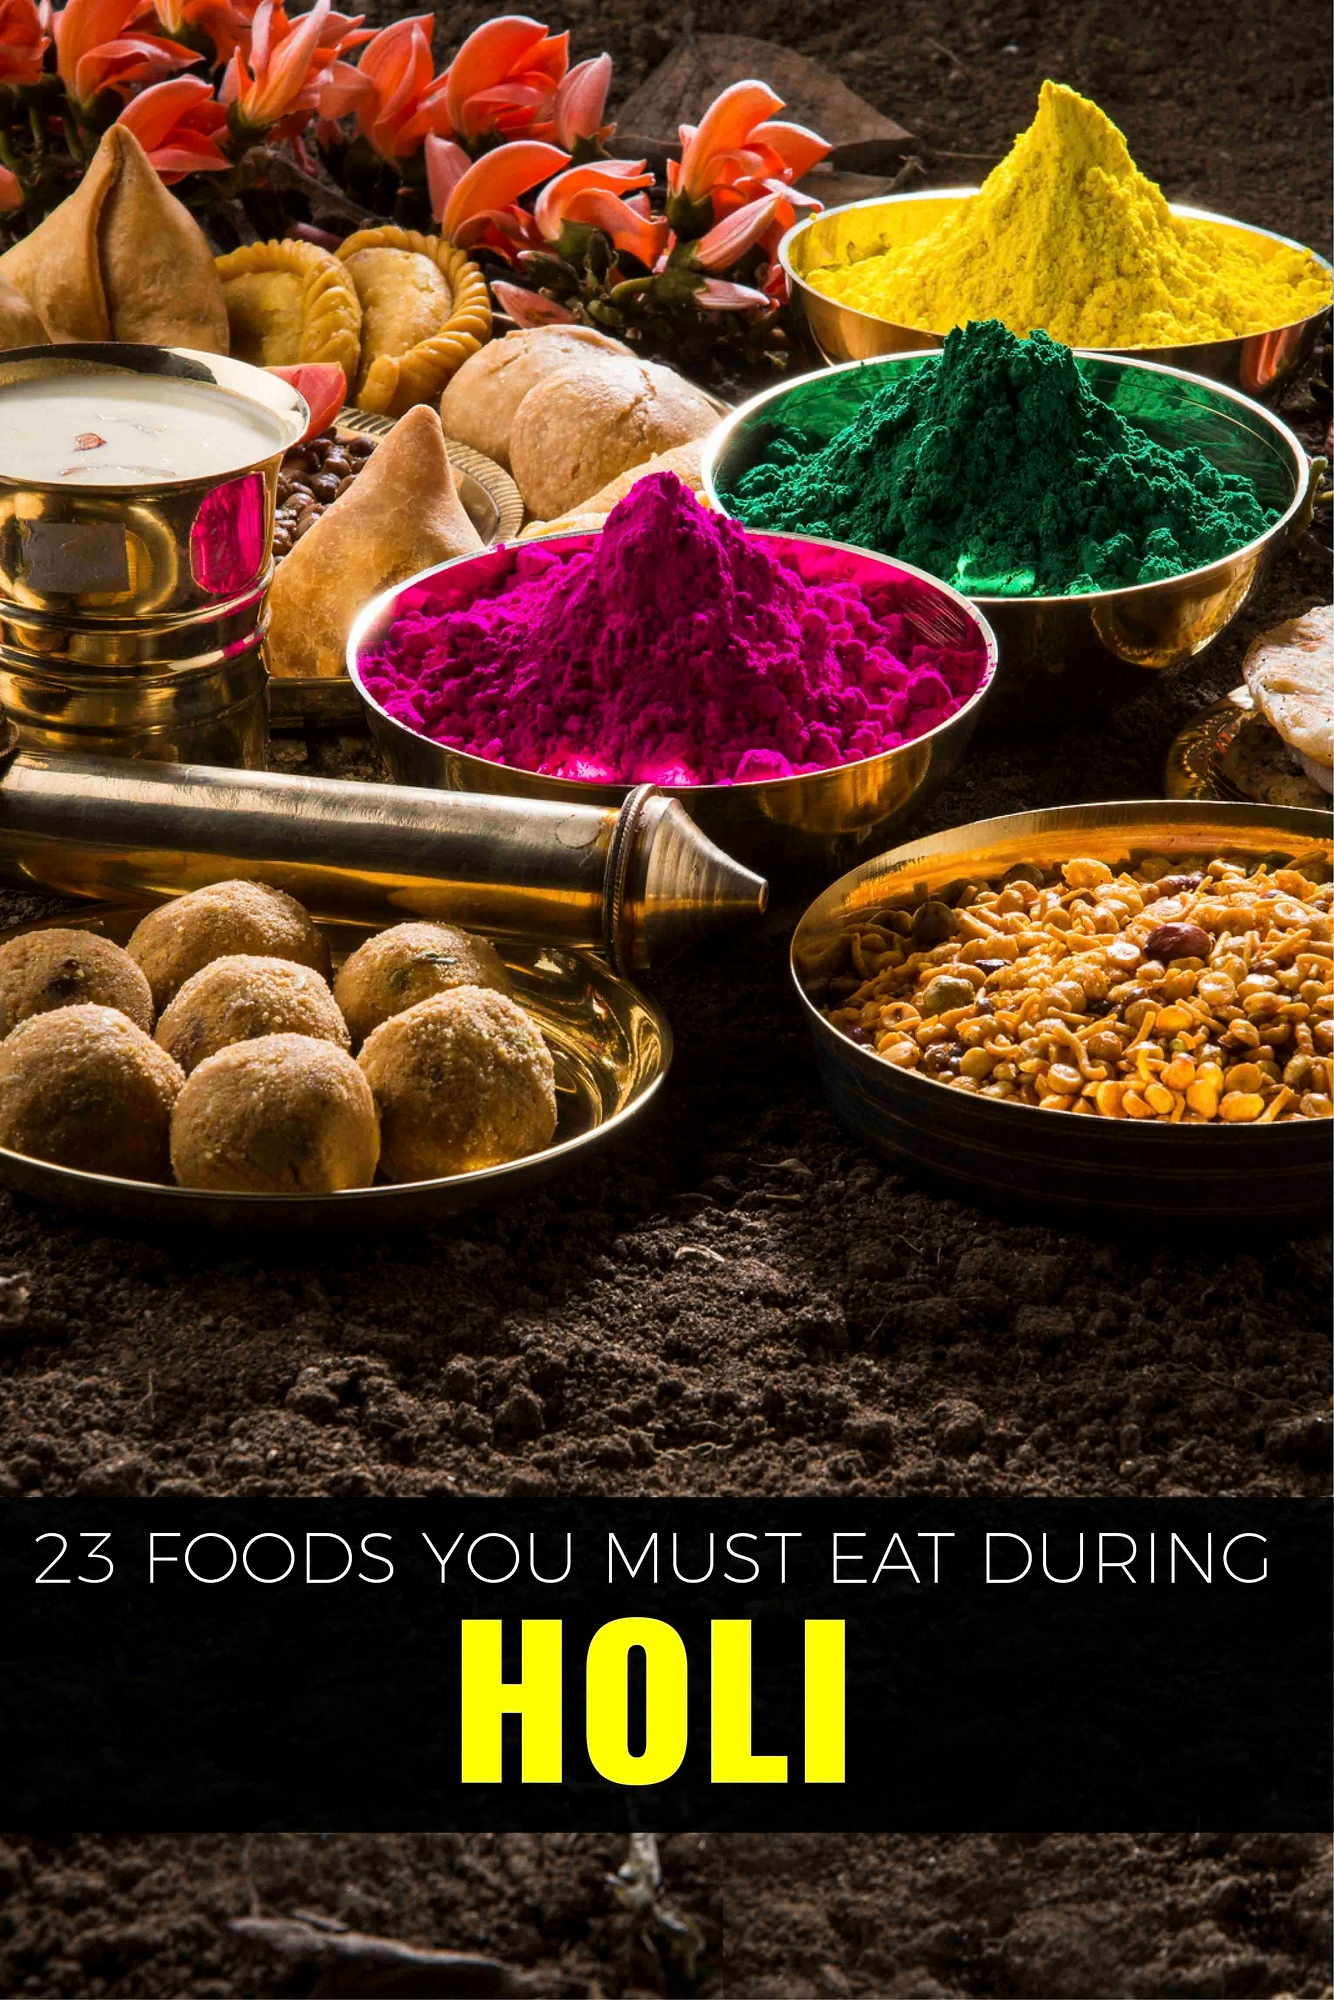 Holi isn't just a festival of colour. You don't want to miss this Holi food - one of the best parts of the celebration.